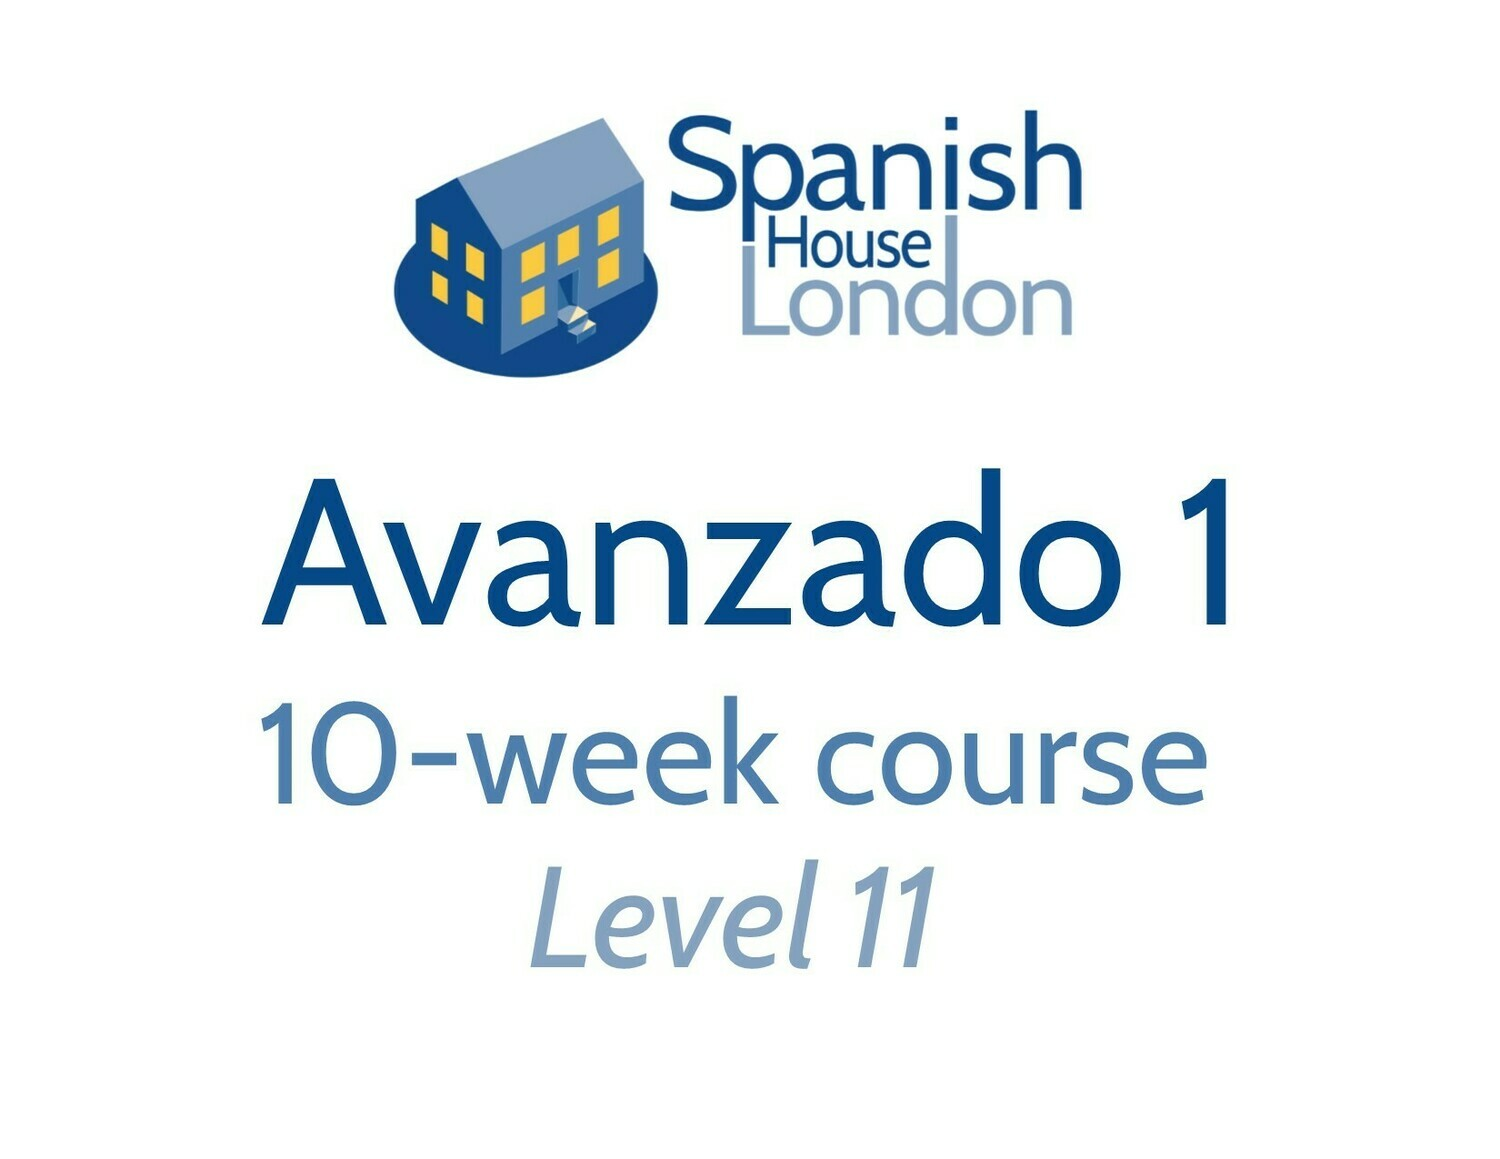 Avanzado 1 Course starting on 14th November at 6pm in Clapham North